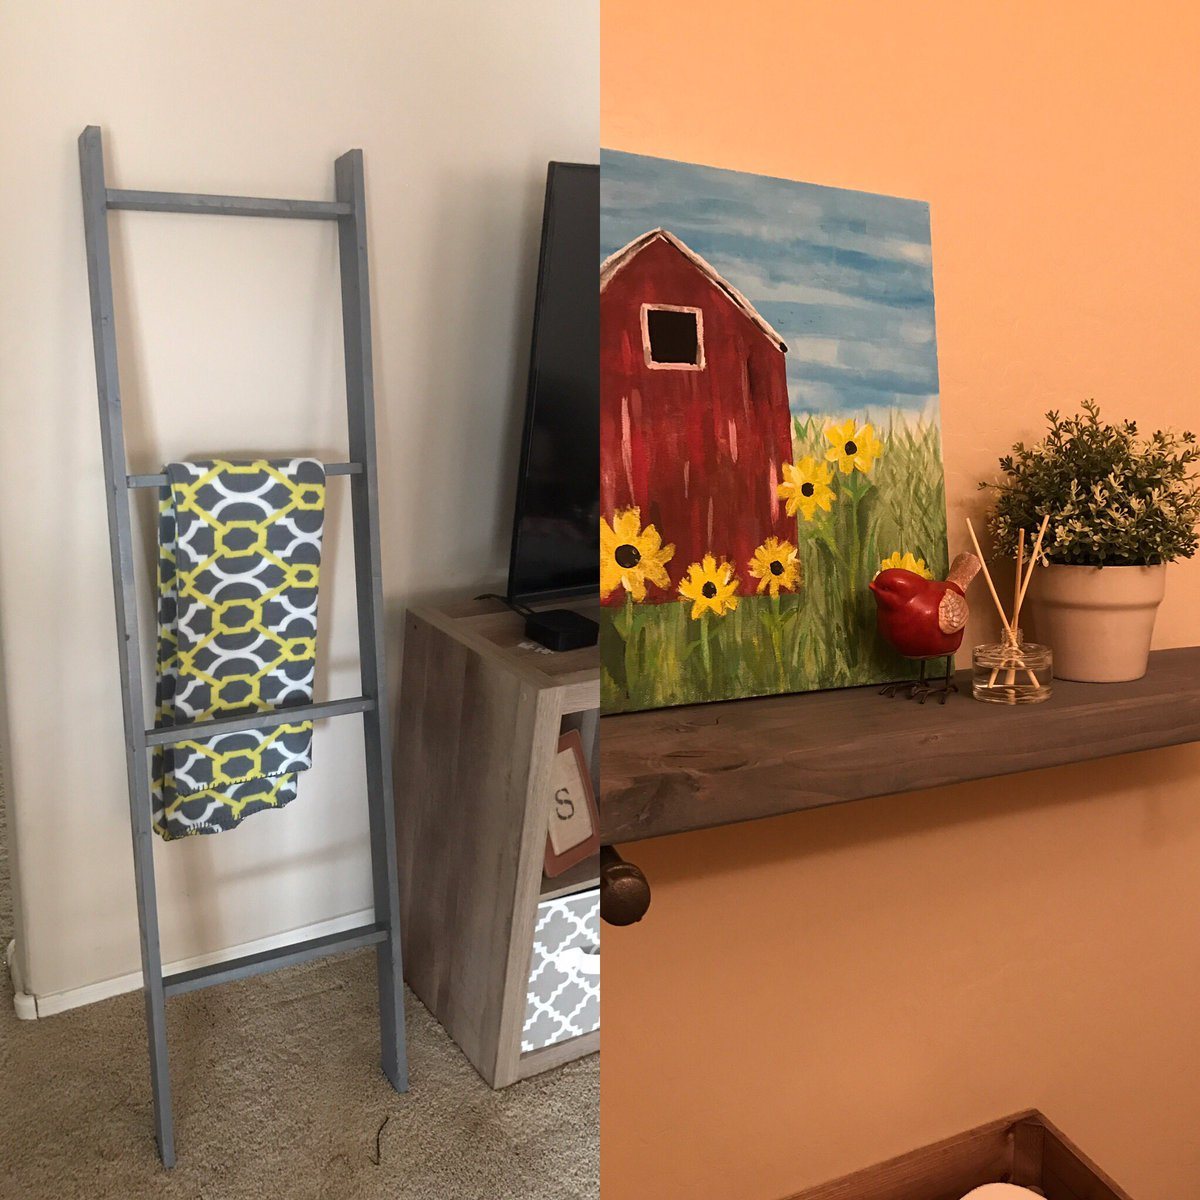 #forthehome #diy #projects #woodworking #farmhousestyle #HomeDecor #blanket-ladder #pipeshelf <br>http://pic.twitter.com/eRVwbSx52T